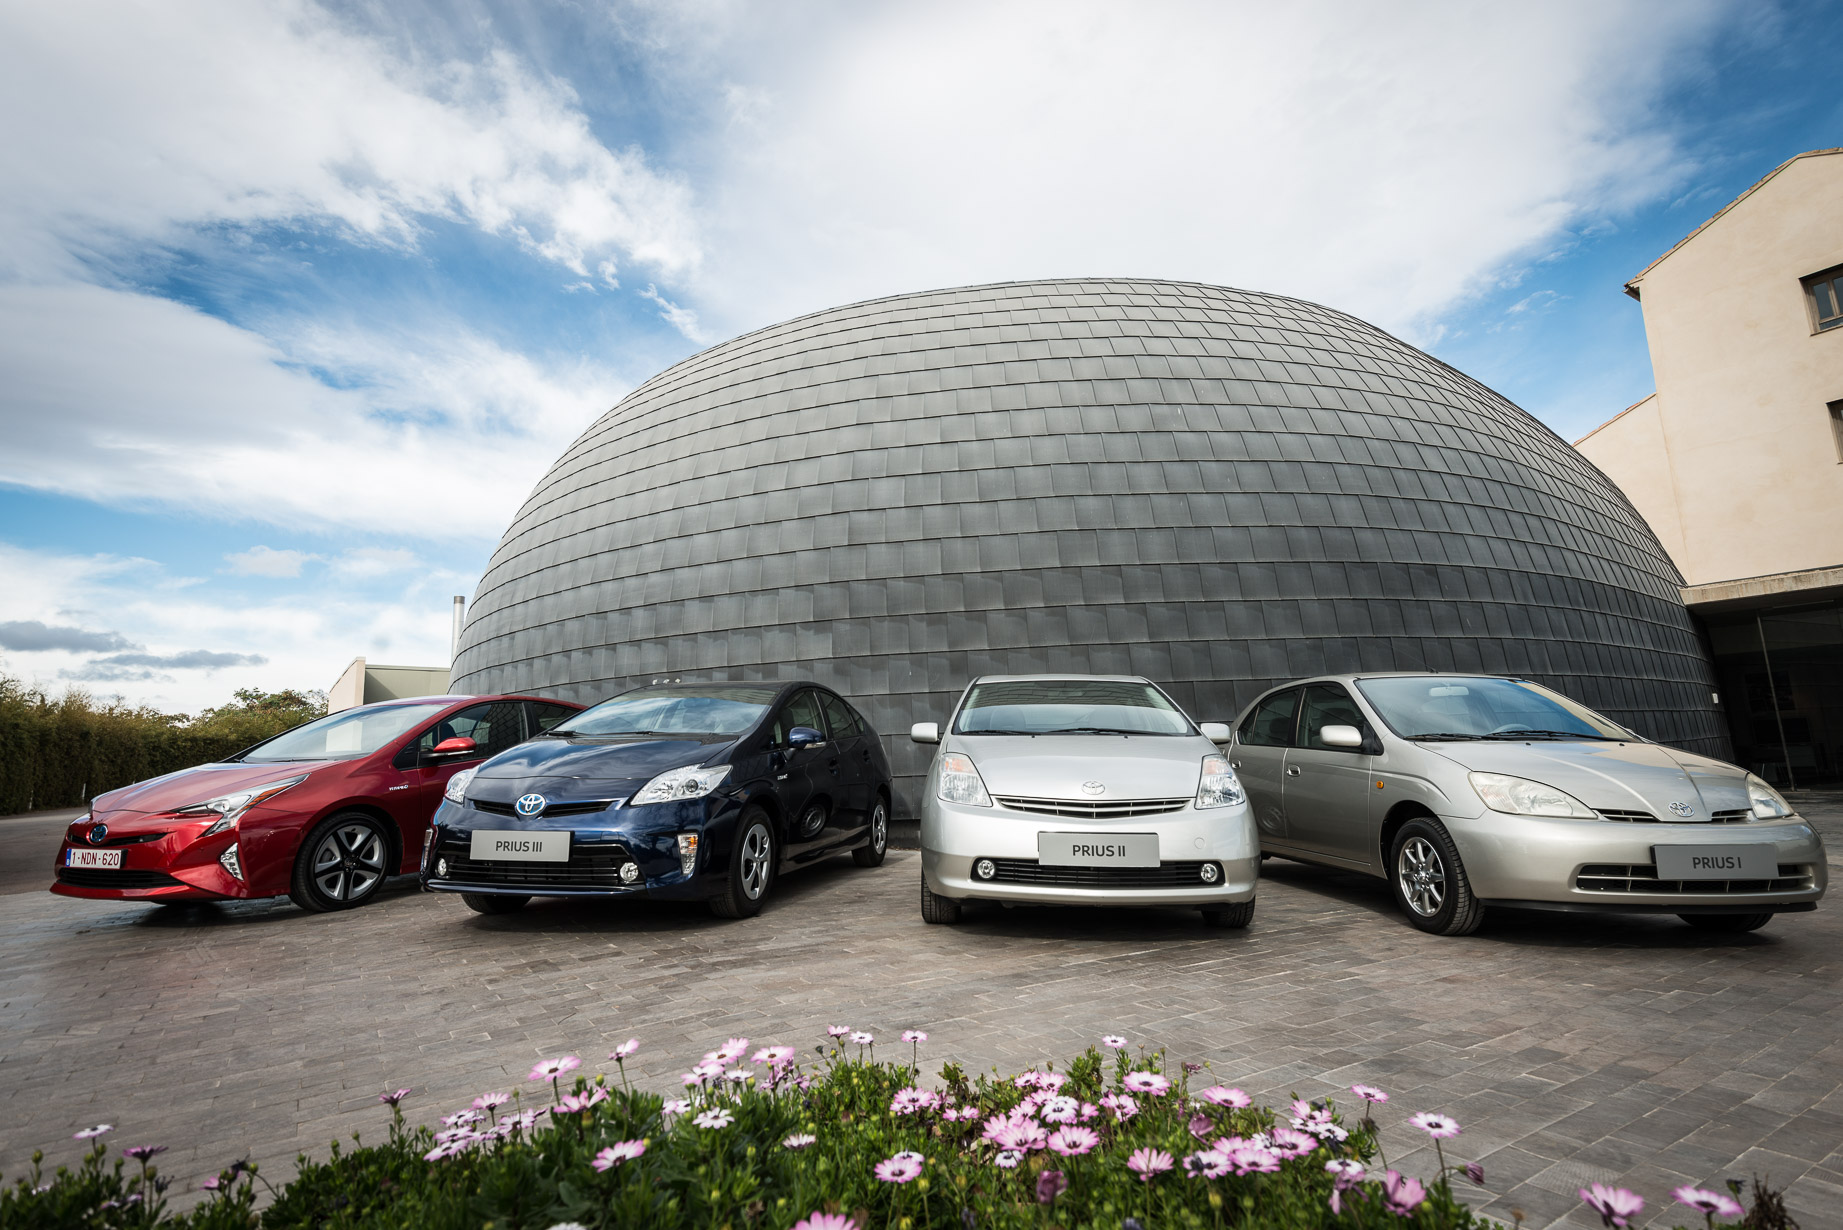 Different generations of the Prius